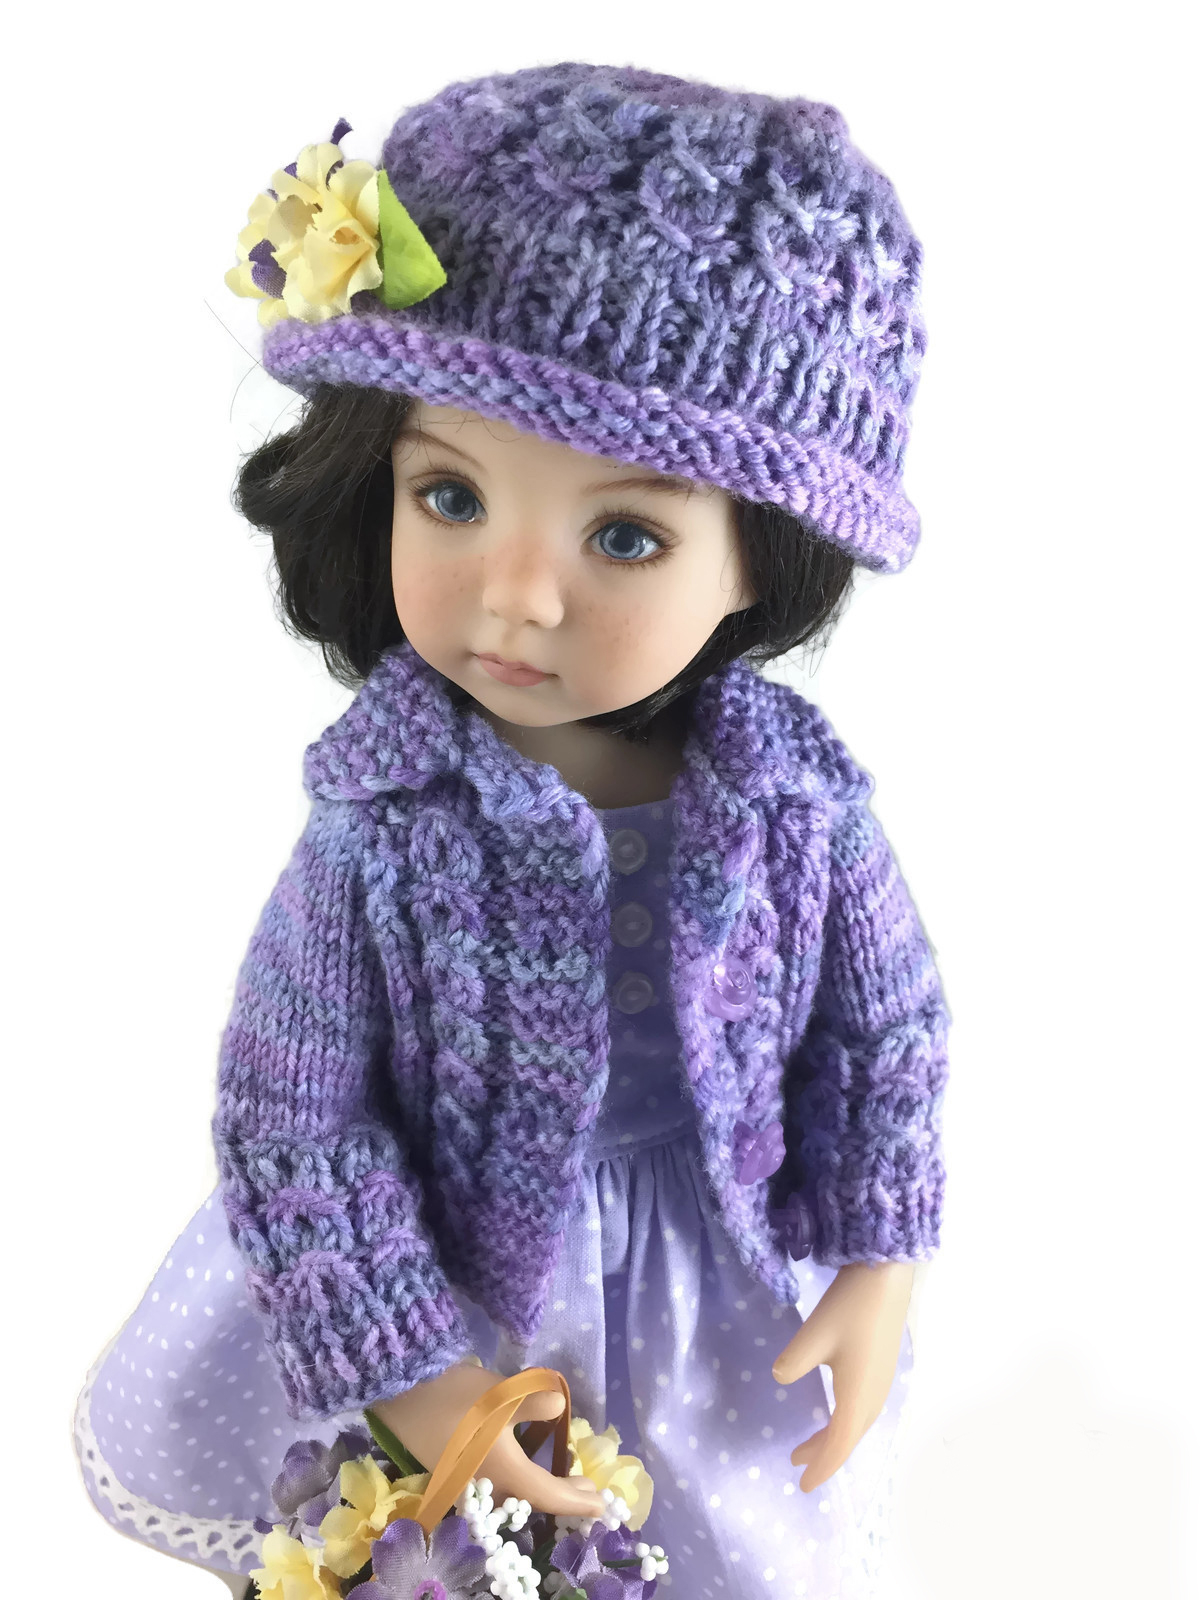 Free Knitting Patterns For Dolls Hats Eyelet Cable Bundle Cardigan And Hat To Fit 13 Inch Dolls Pdf Knitting Pattern